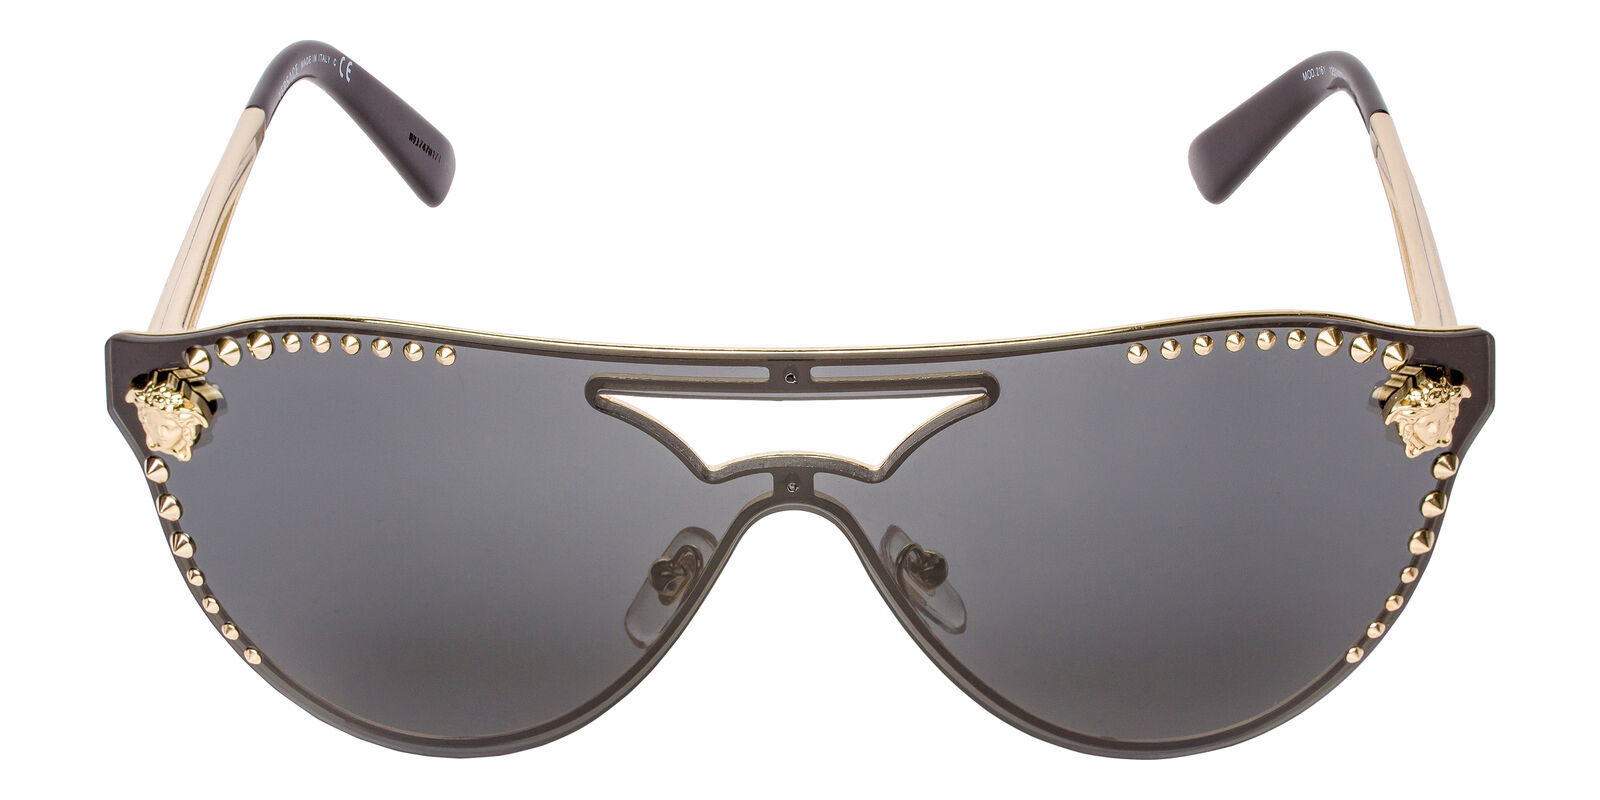 842120b7a4e2 Versace VE2161 125287 42mm Gold Black Frame Gray Lens Aviator Sunglasses -  $146.52